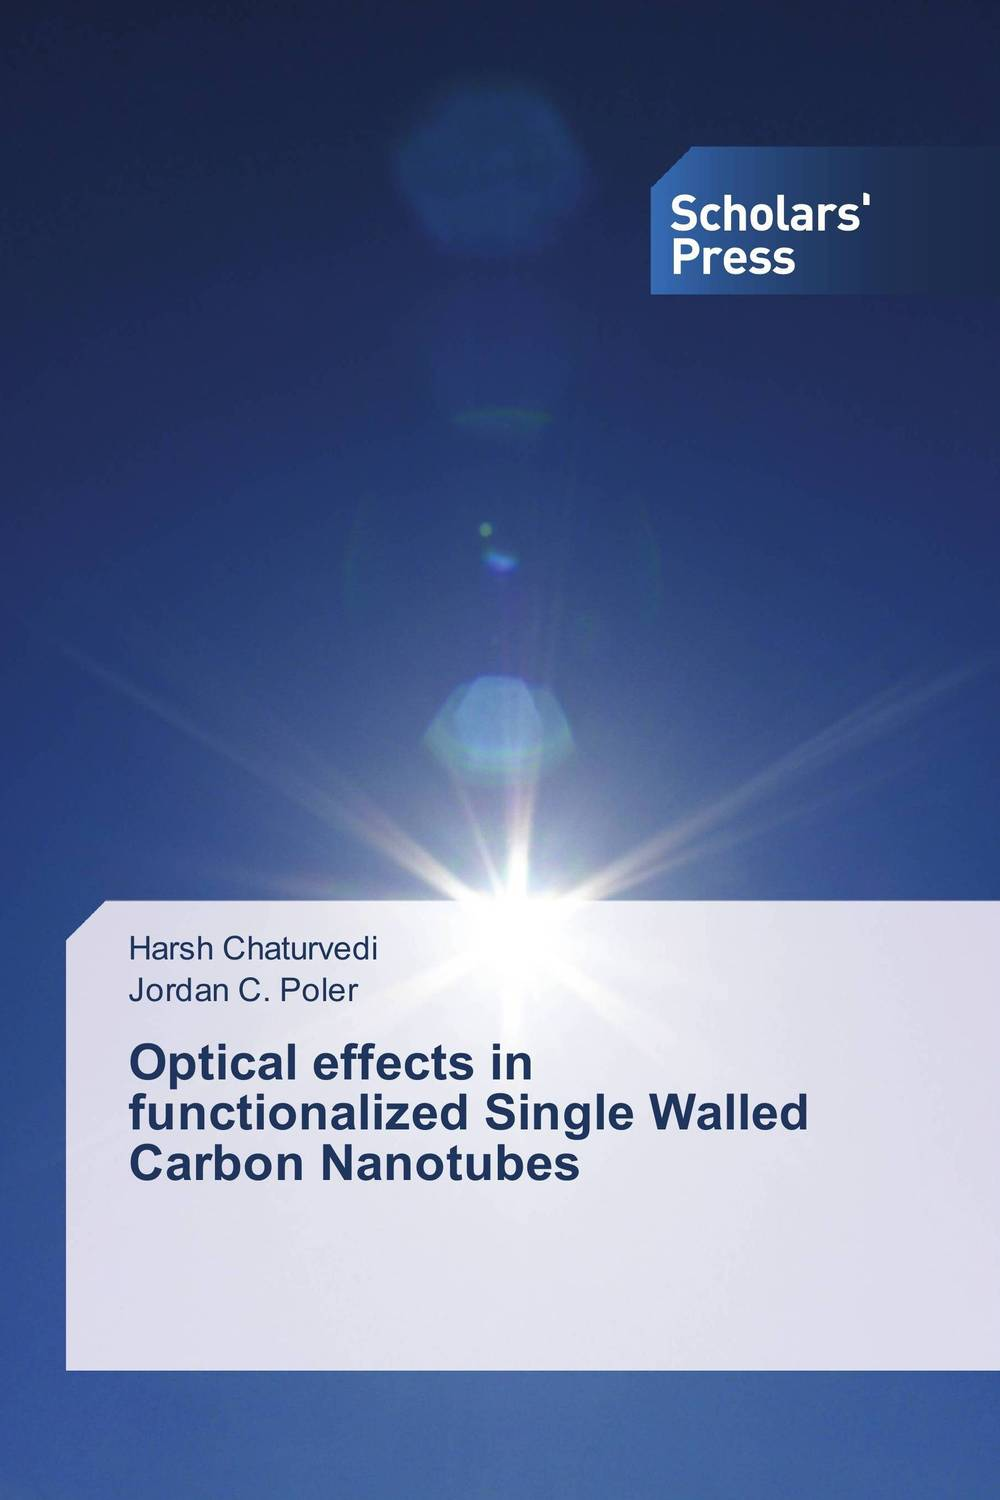 Optical effects in functionalized Single Walled Carbon Nanotubes